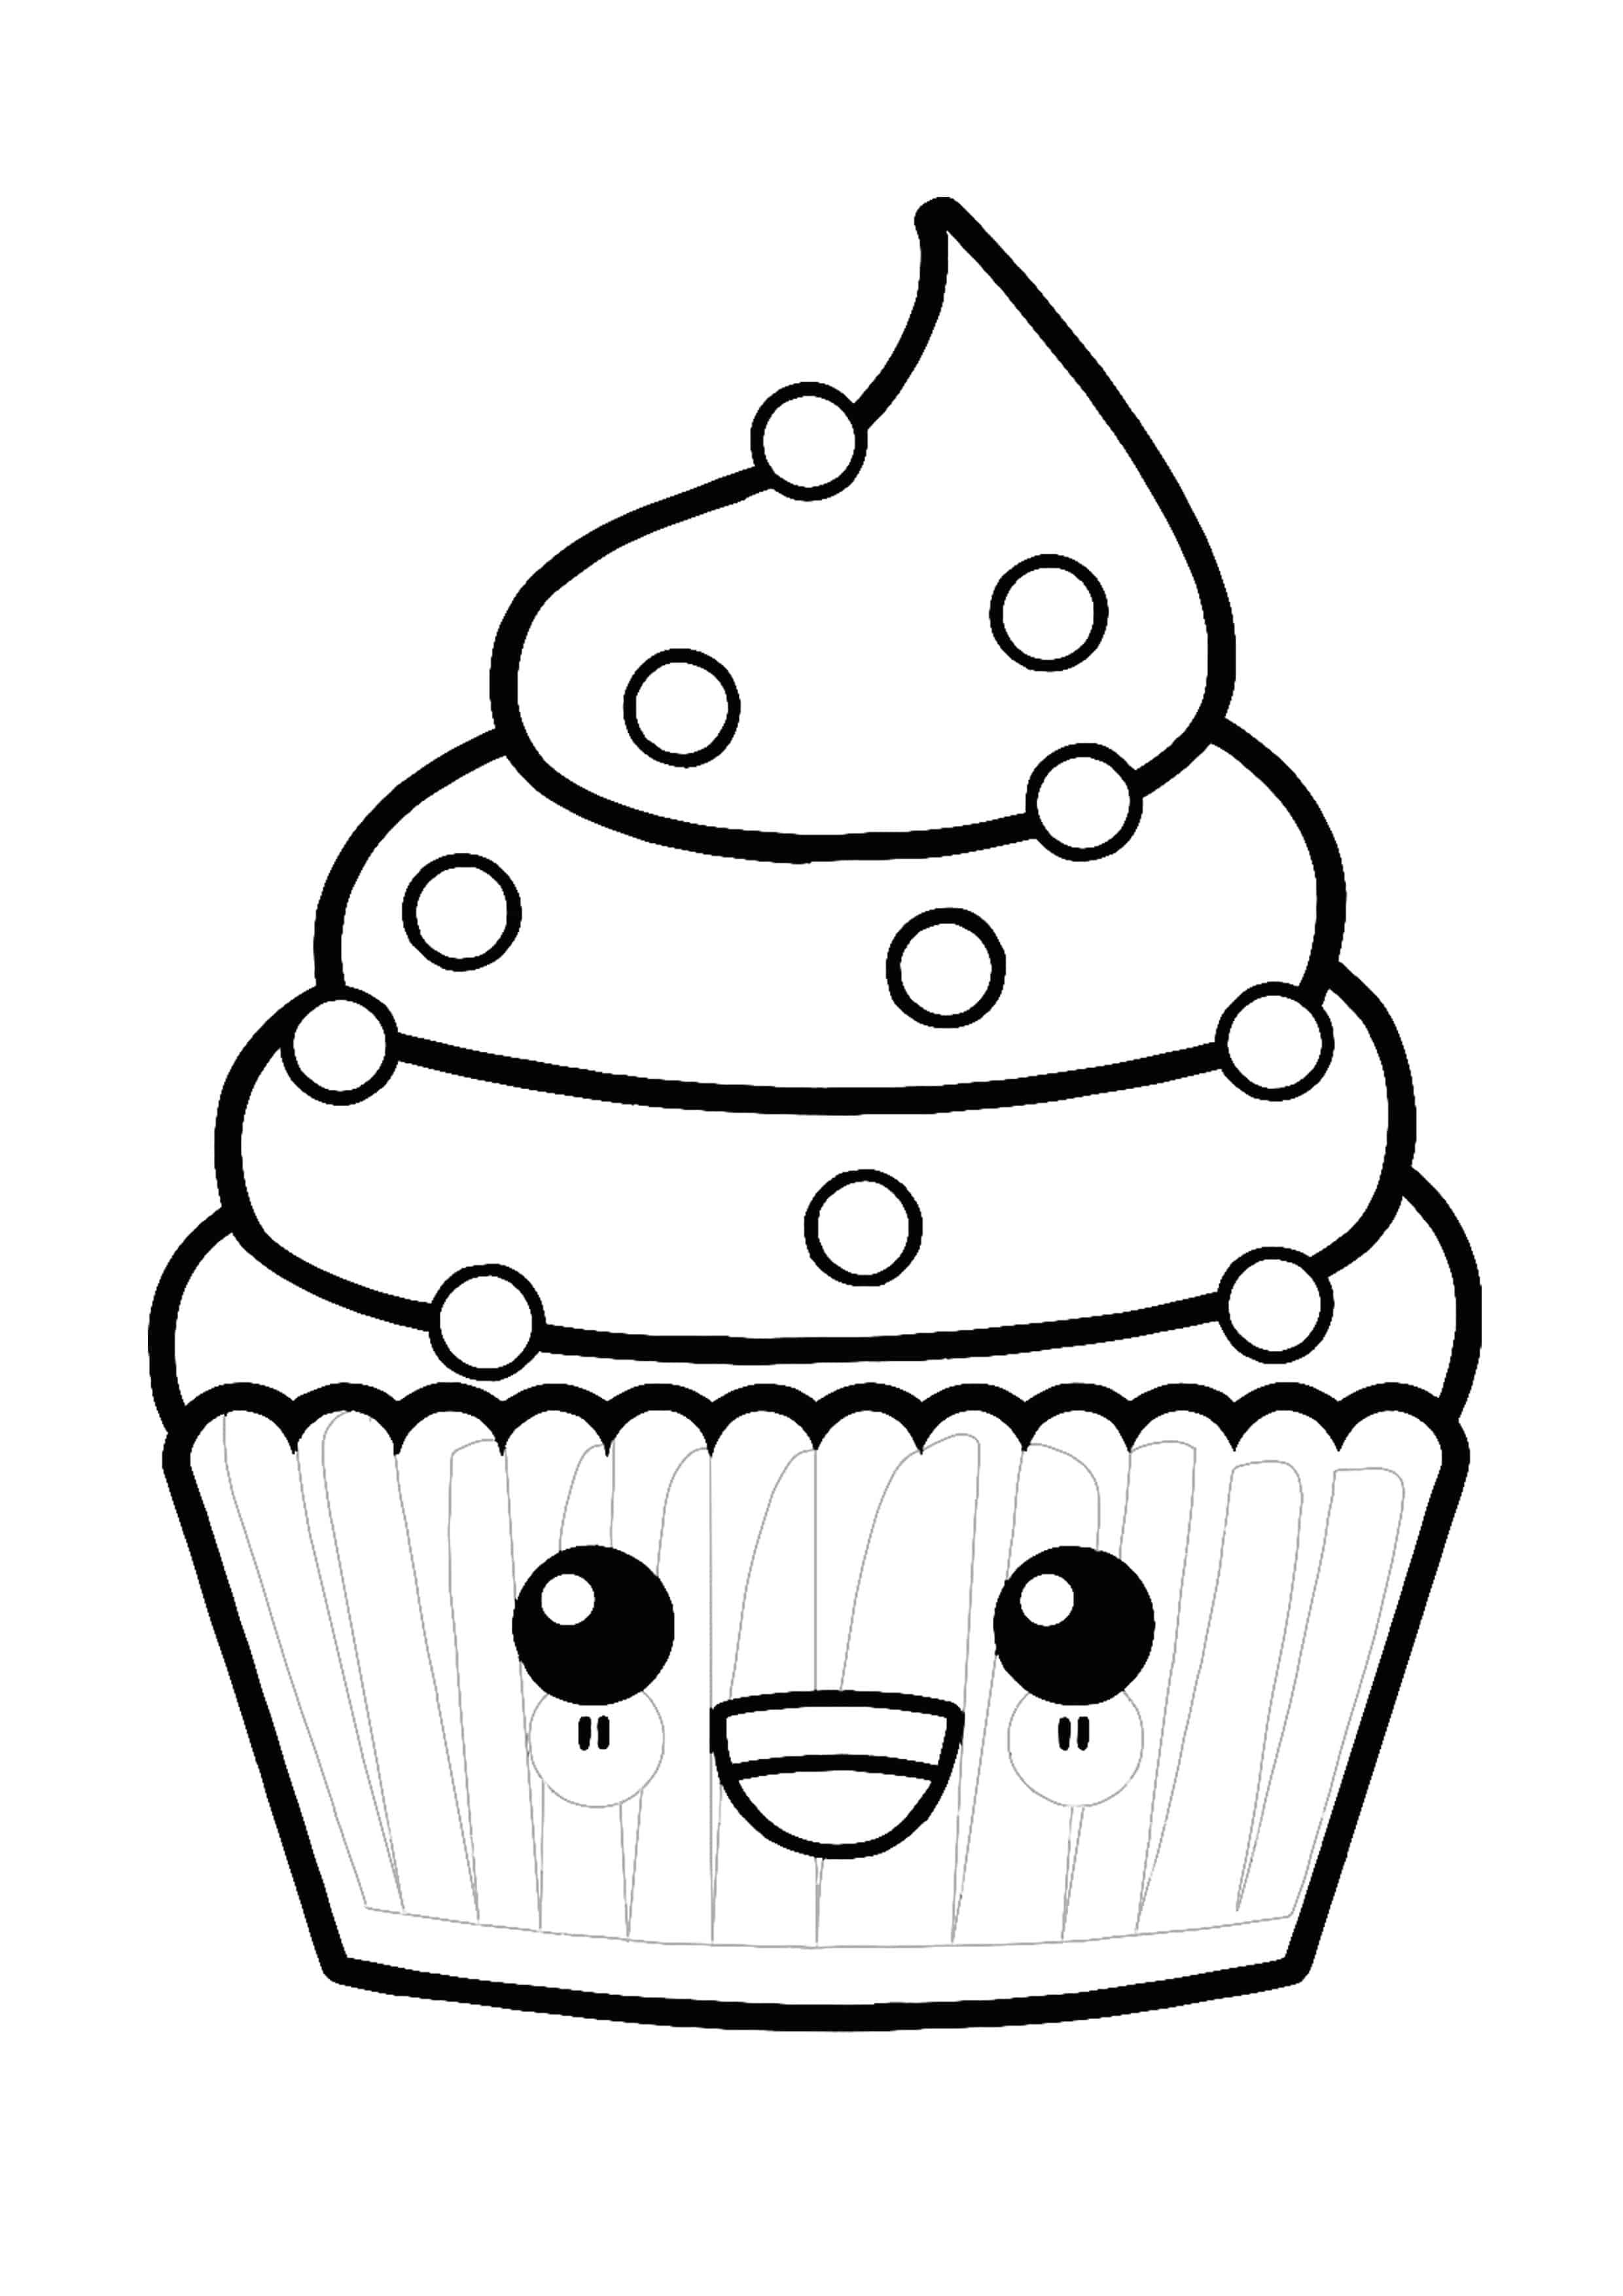 Kawaii Delicious Cupcake Coloring Page In 2020 Cupcake Coloring Pages Coloring Pages Donut Coloring Page